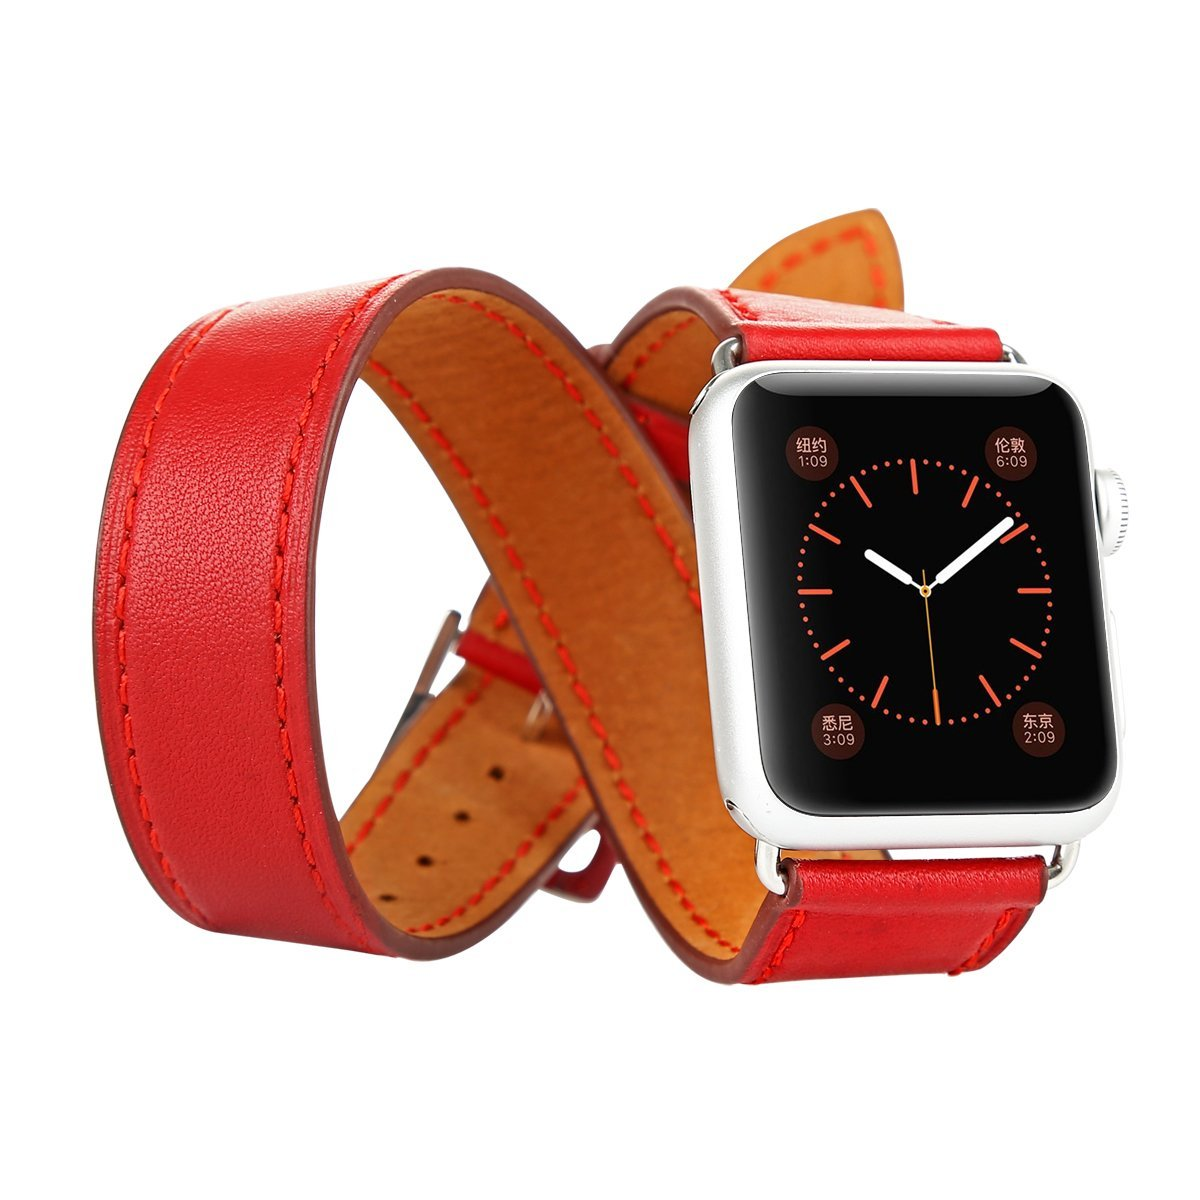 Apple Watch Leather Band,Baseus Sunlord Series Double Cuff Genuine Leather Watchband Replacement iWatch Wristband Link Bracelet with Stainless Steel Buckle for Apple Watch(38mm Red)